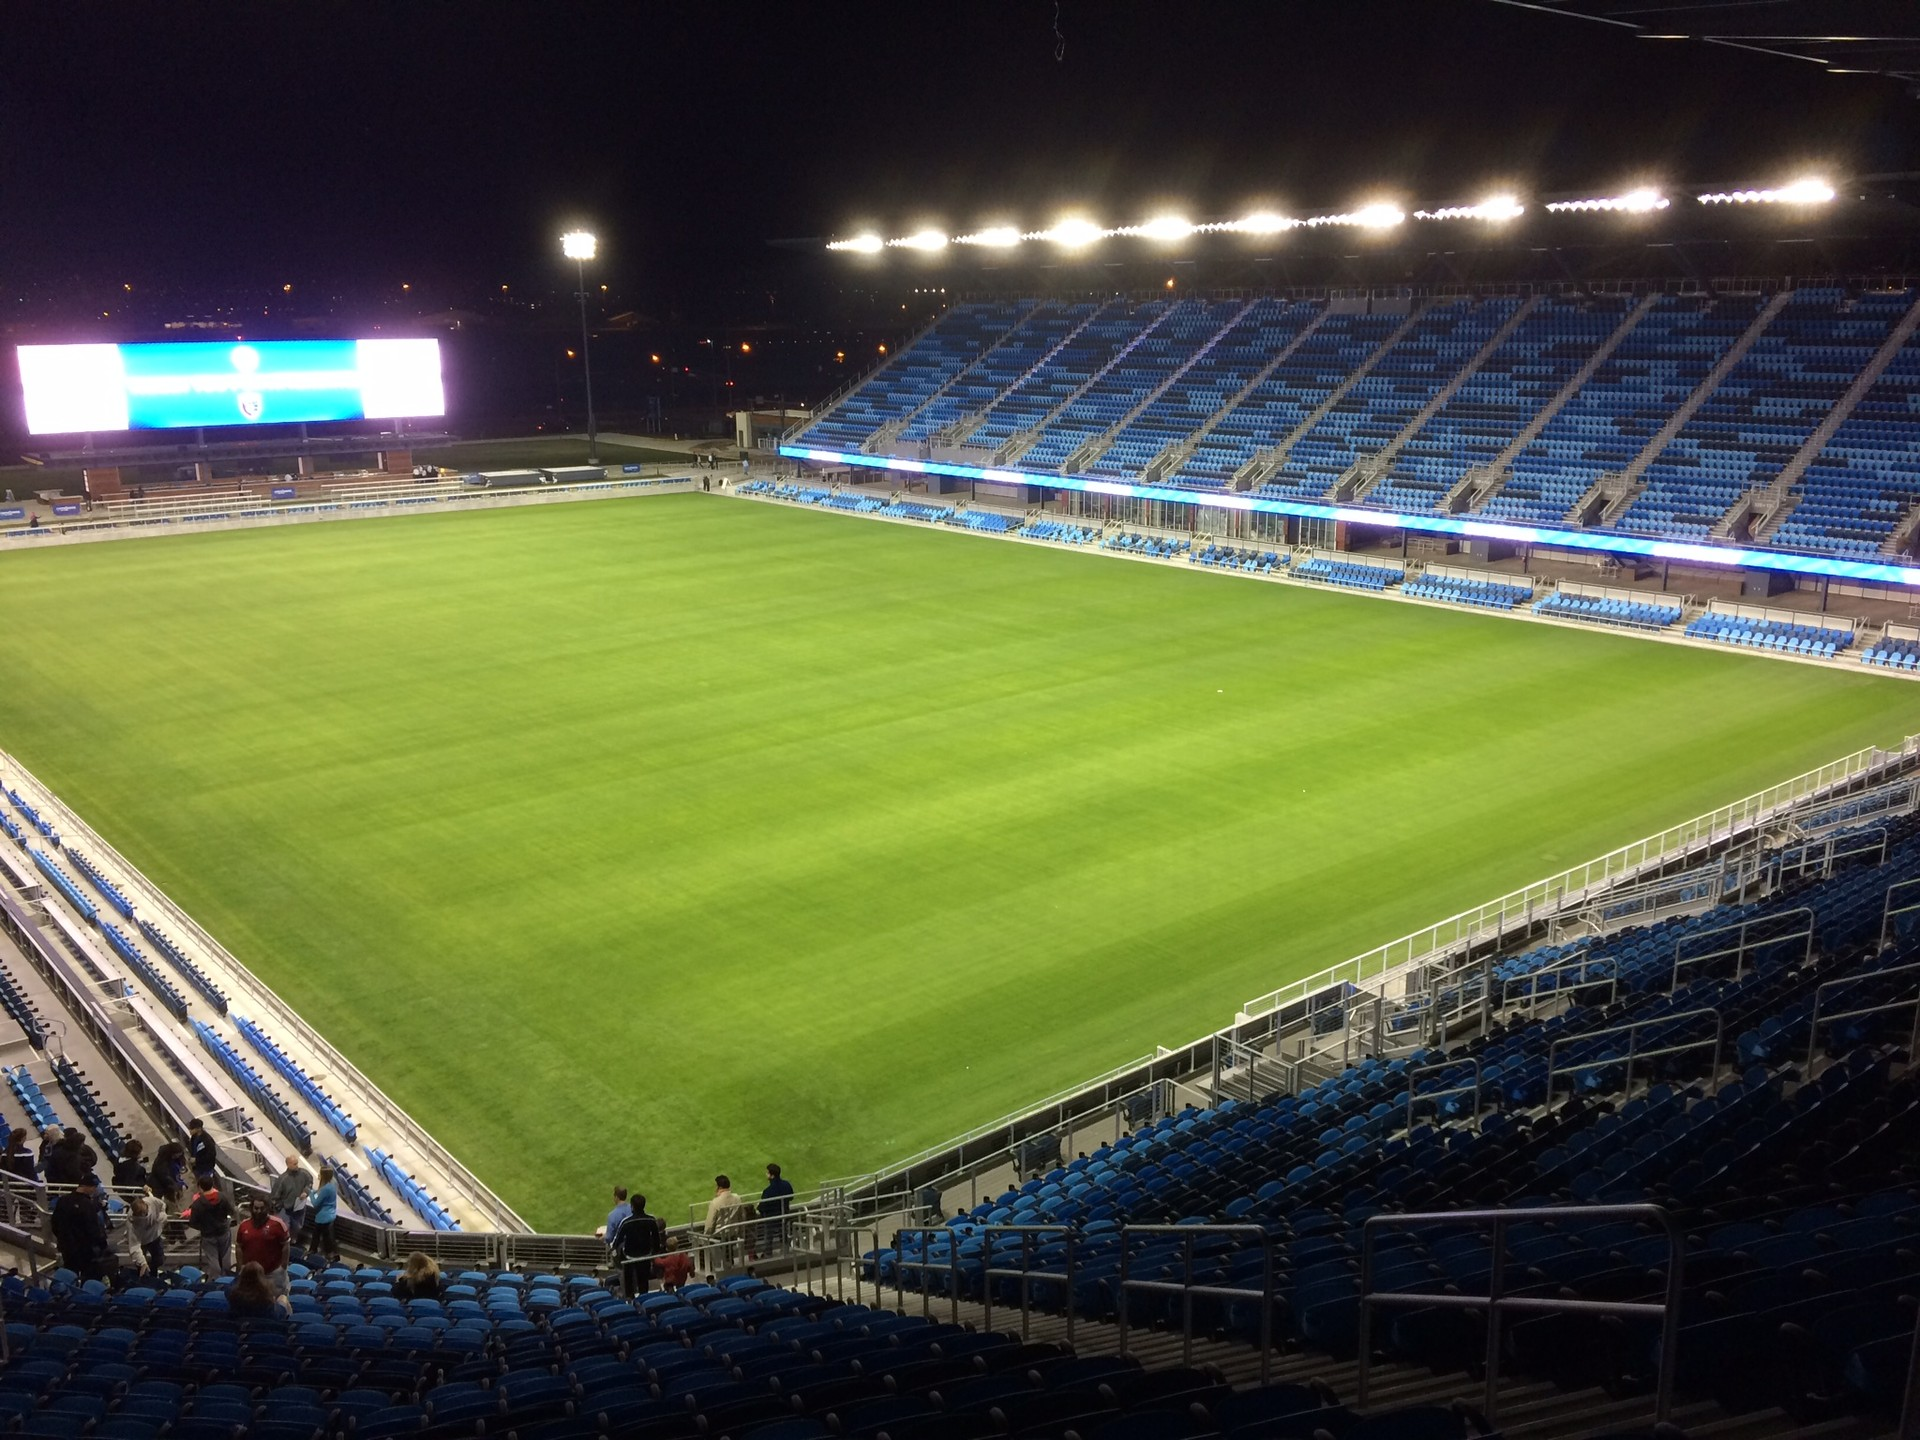 The San Jose Earthquakes, a professional soccer team, finally gets a permanent home called Avaya Stadium.